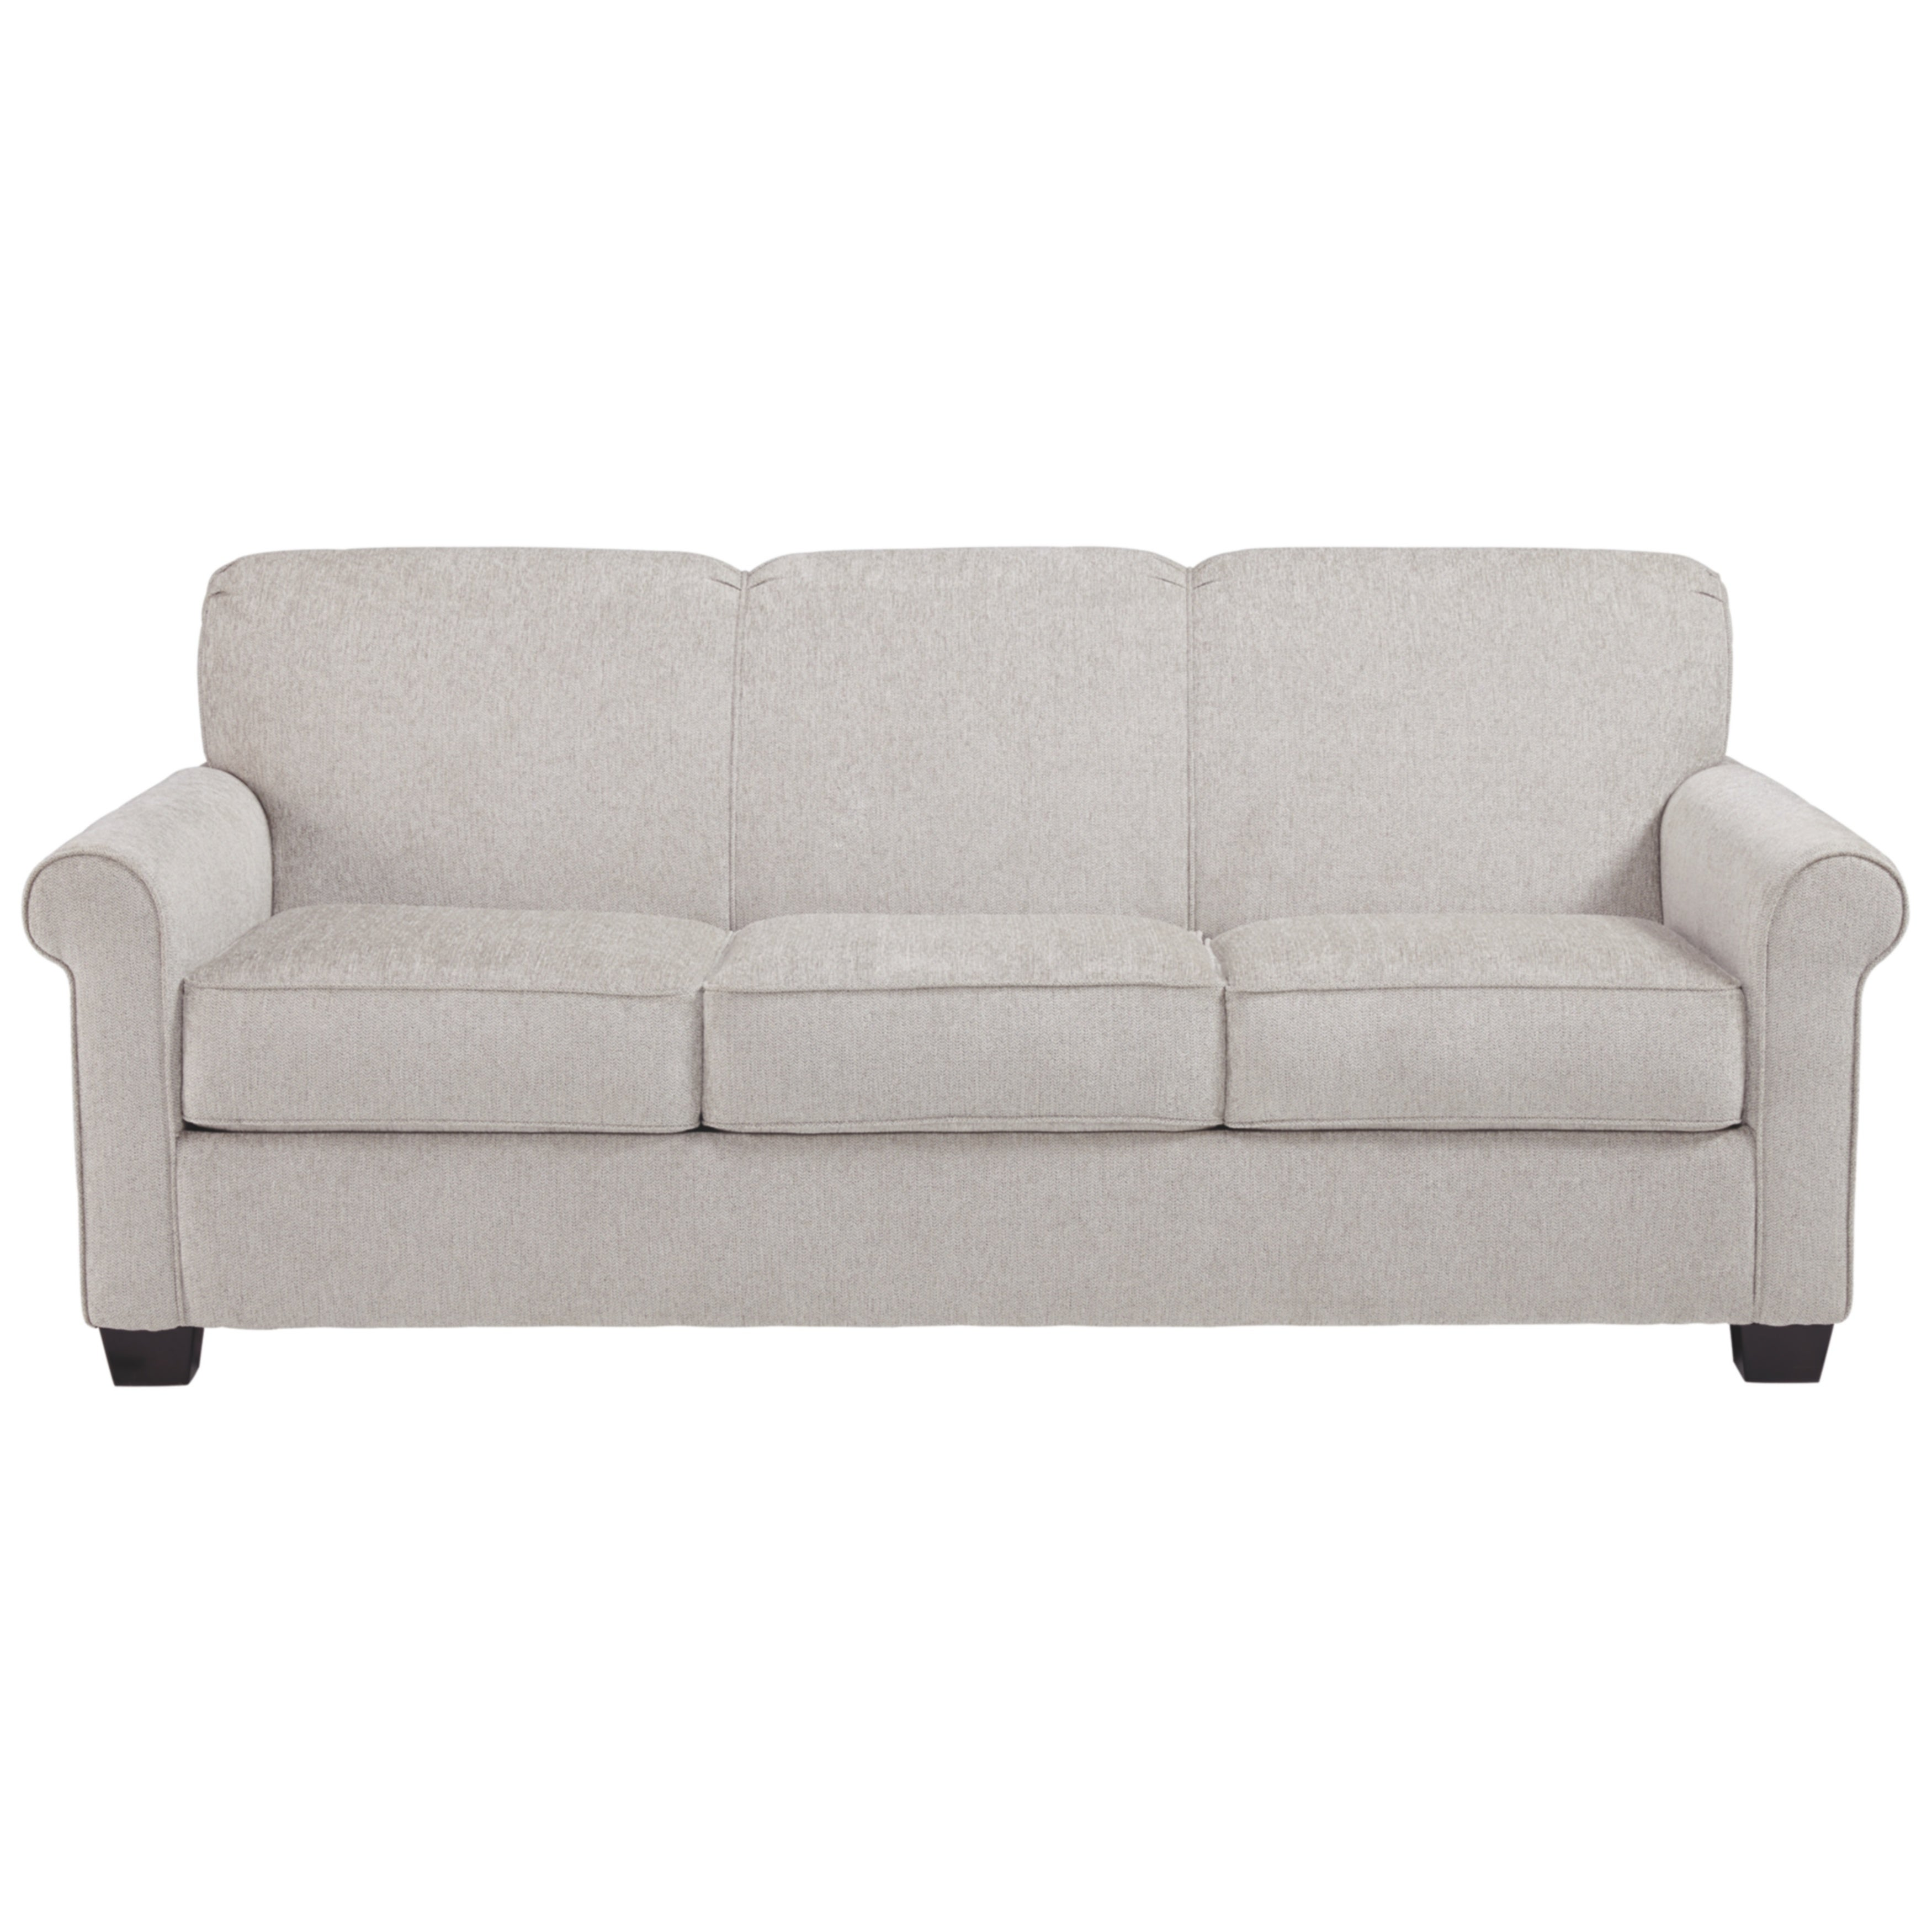 Signature Design by Ashley Cansler Contemporary Pebble Queen Sofa Sleeper